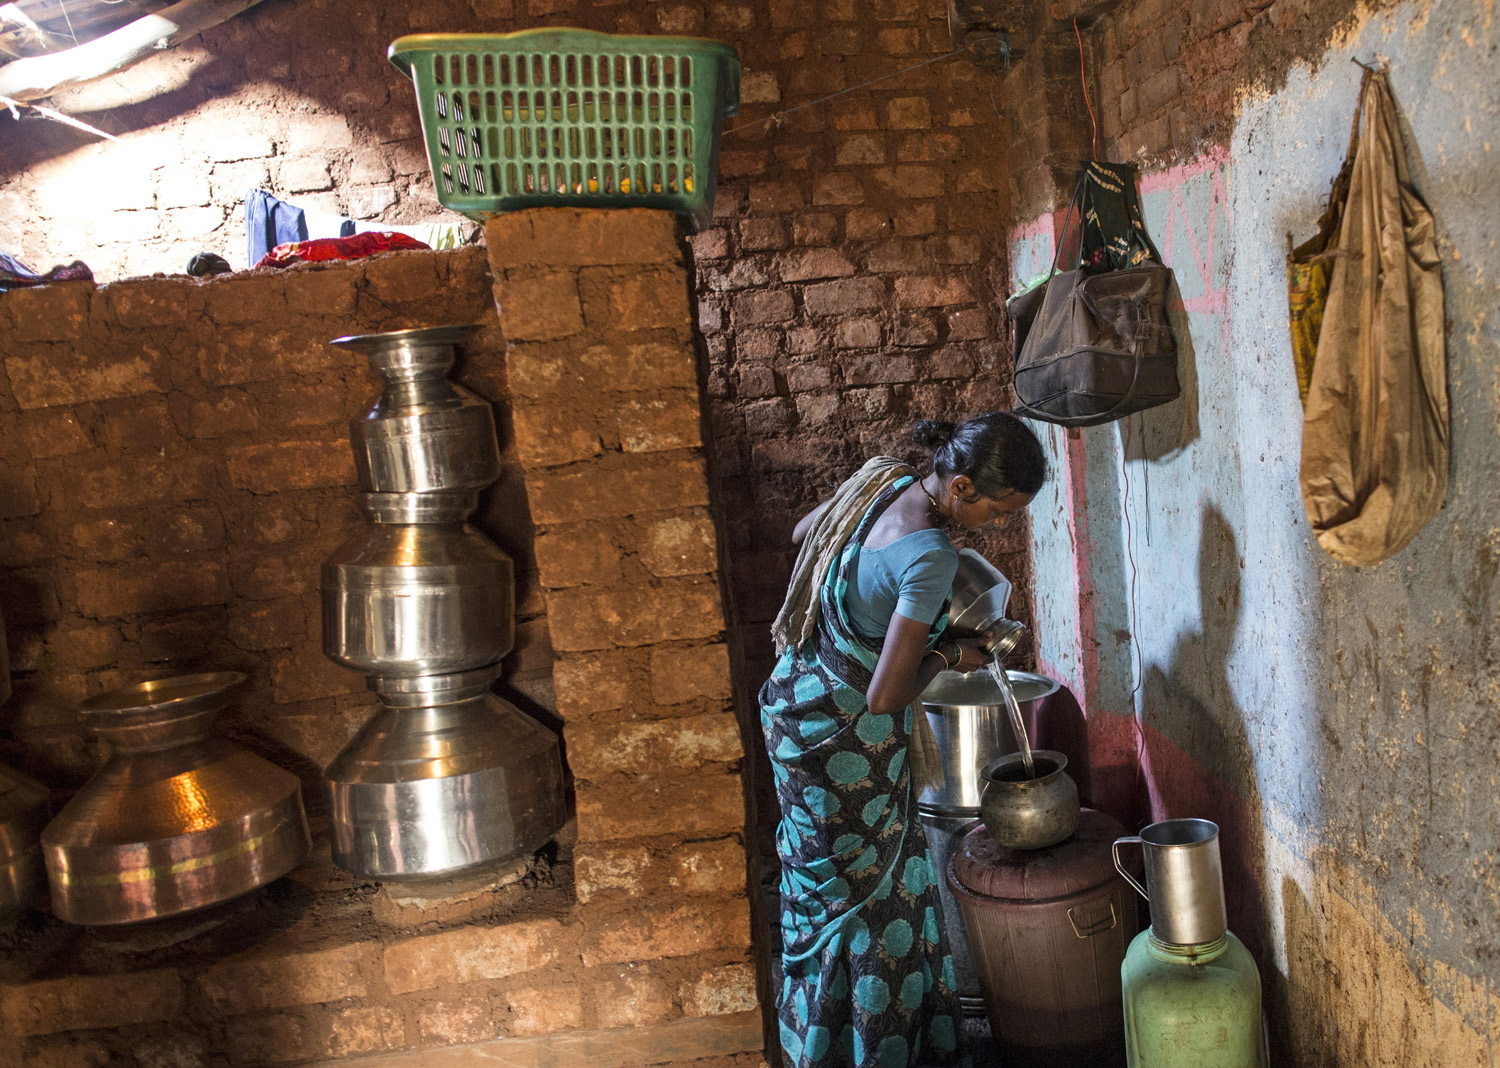 Shivarti, second wife of Namdeo, empties a water pitcher as she gets ready to fill water from a well outside Denganmal village.